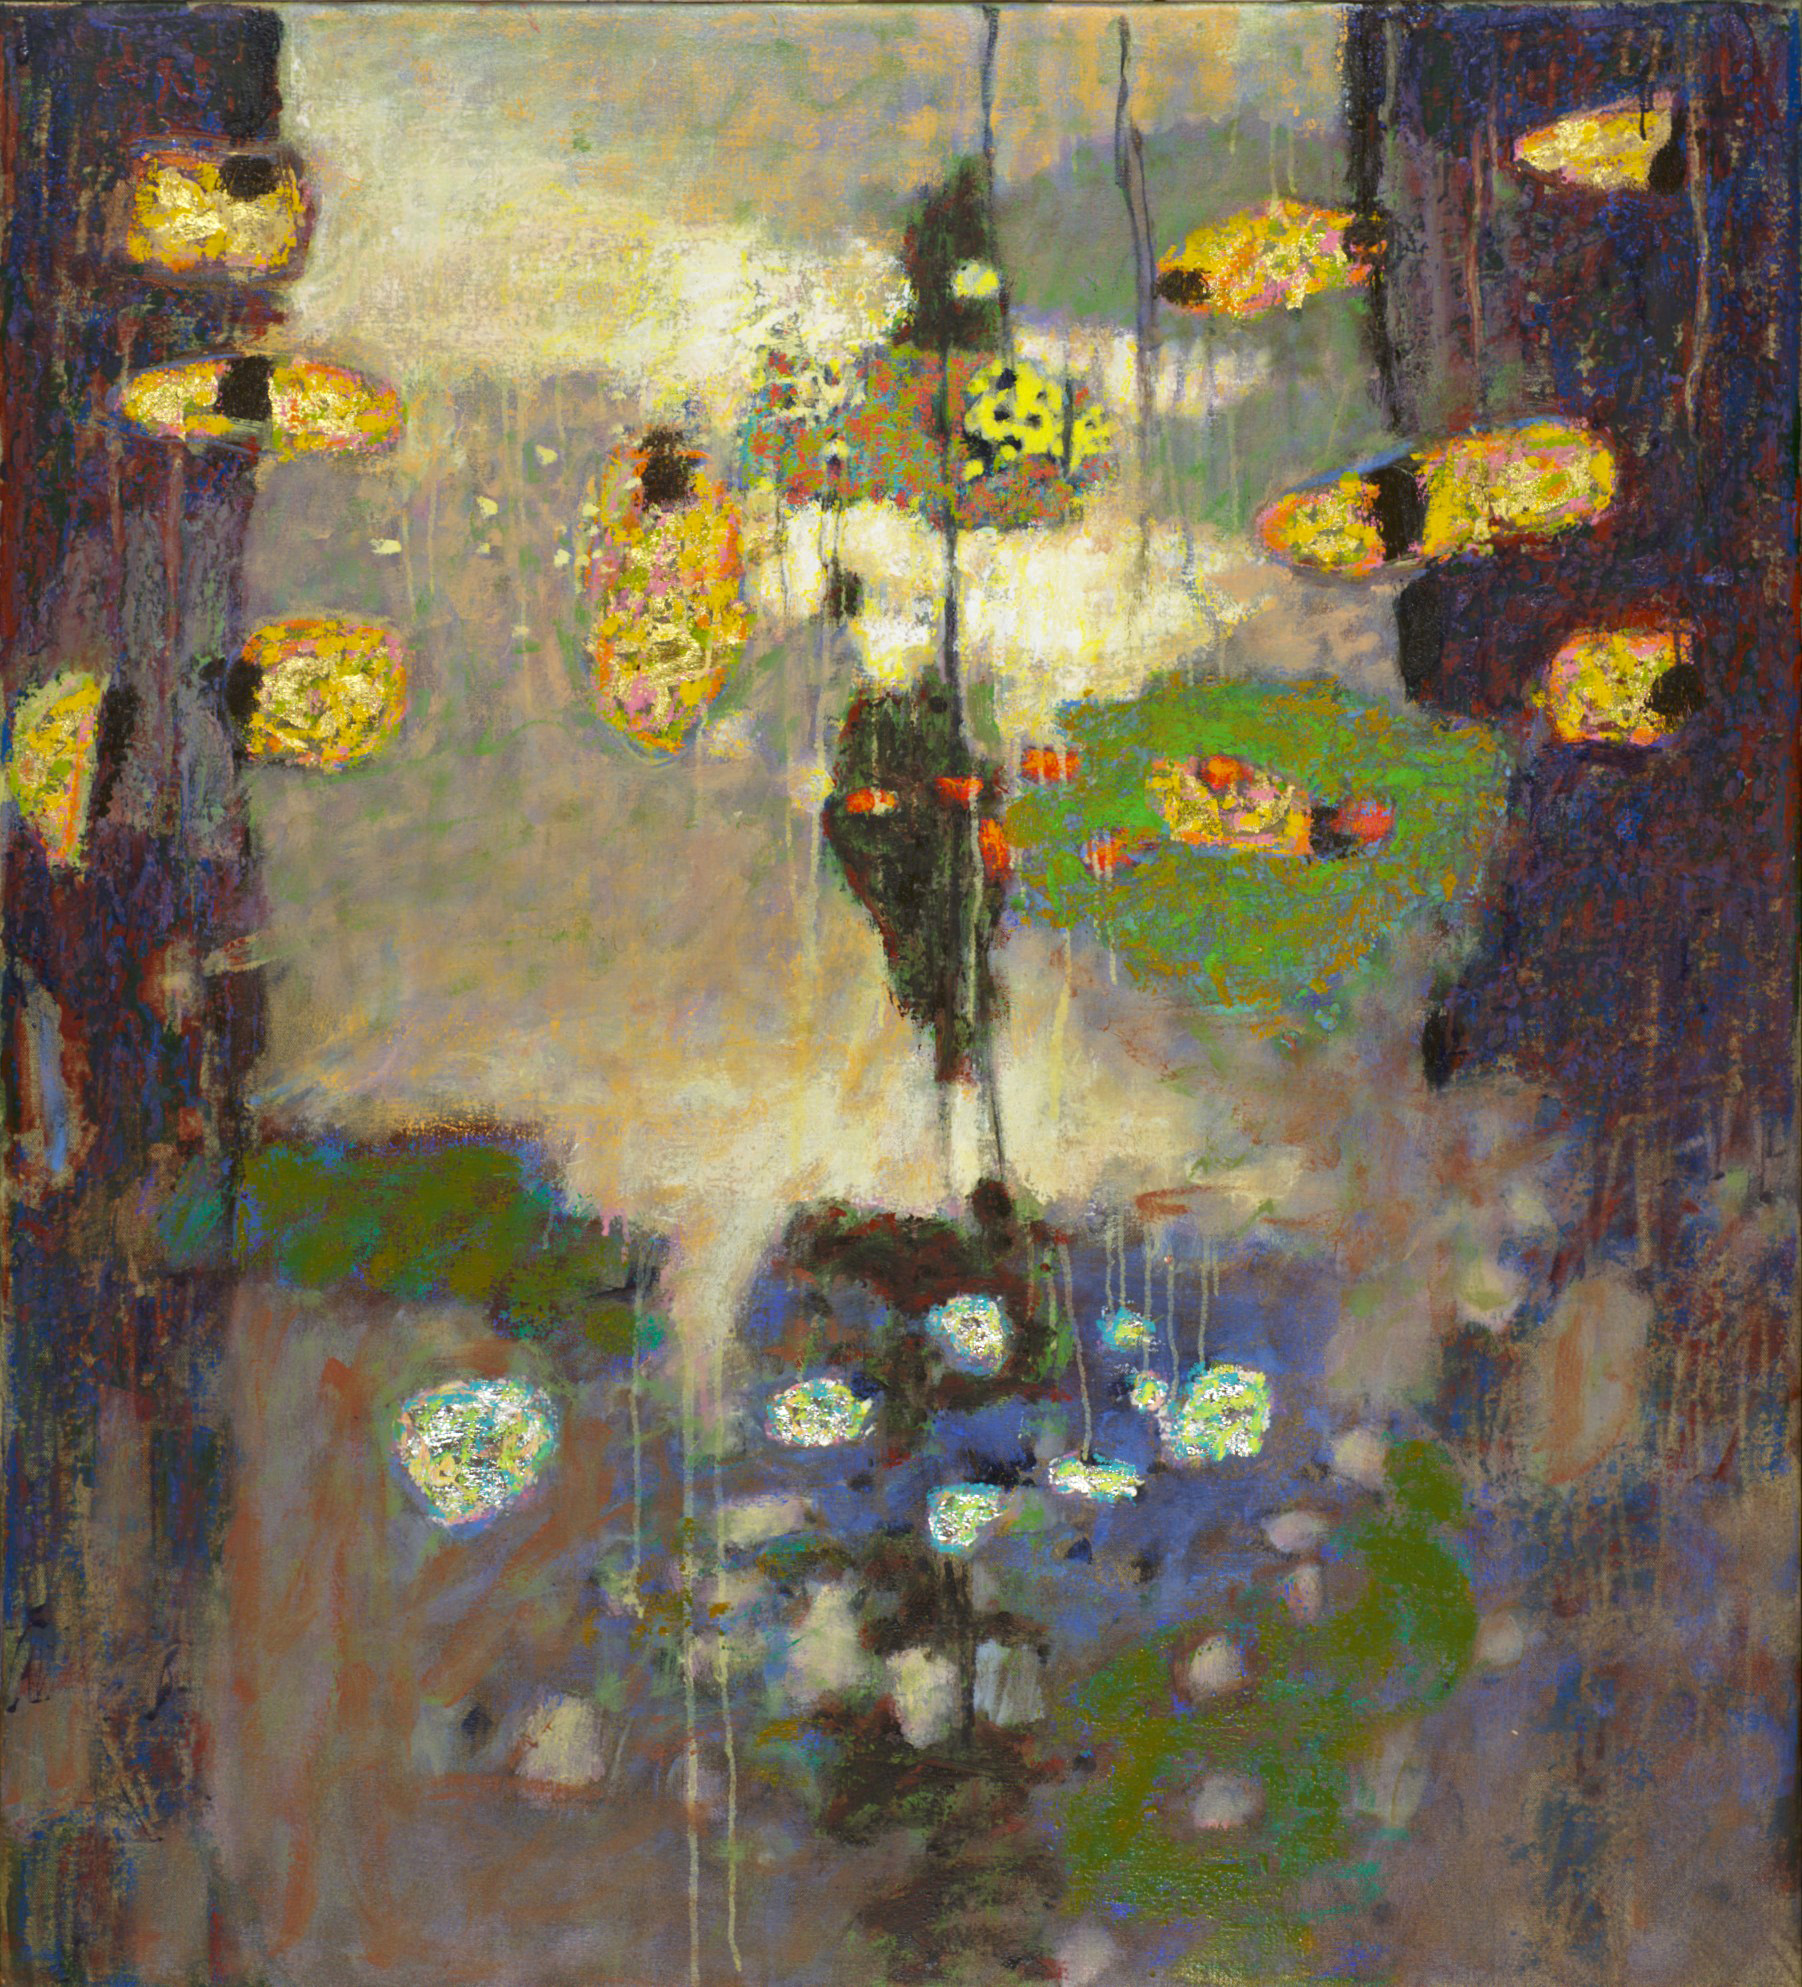 Intermingling Possibilities   | oil on canvas | 40 x 36"